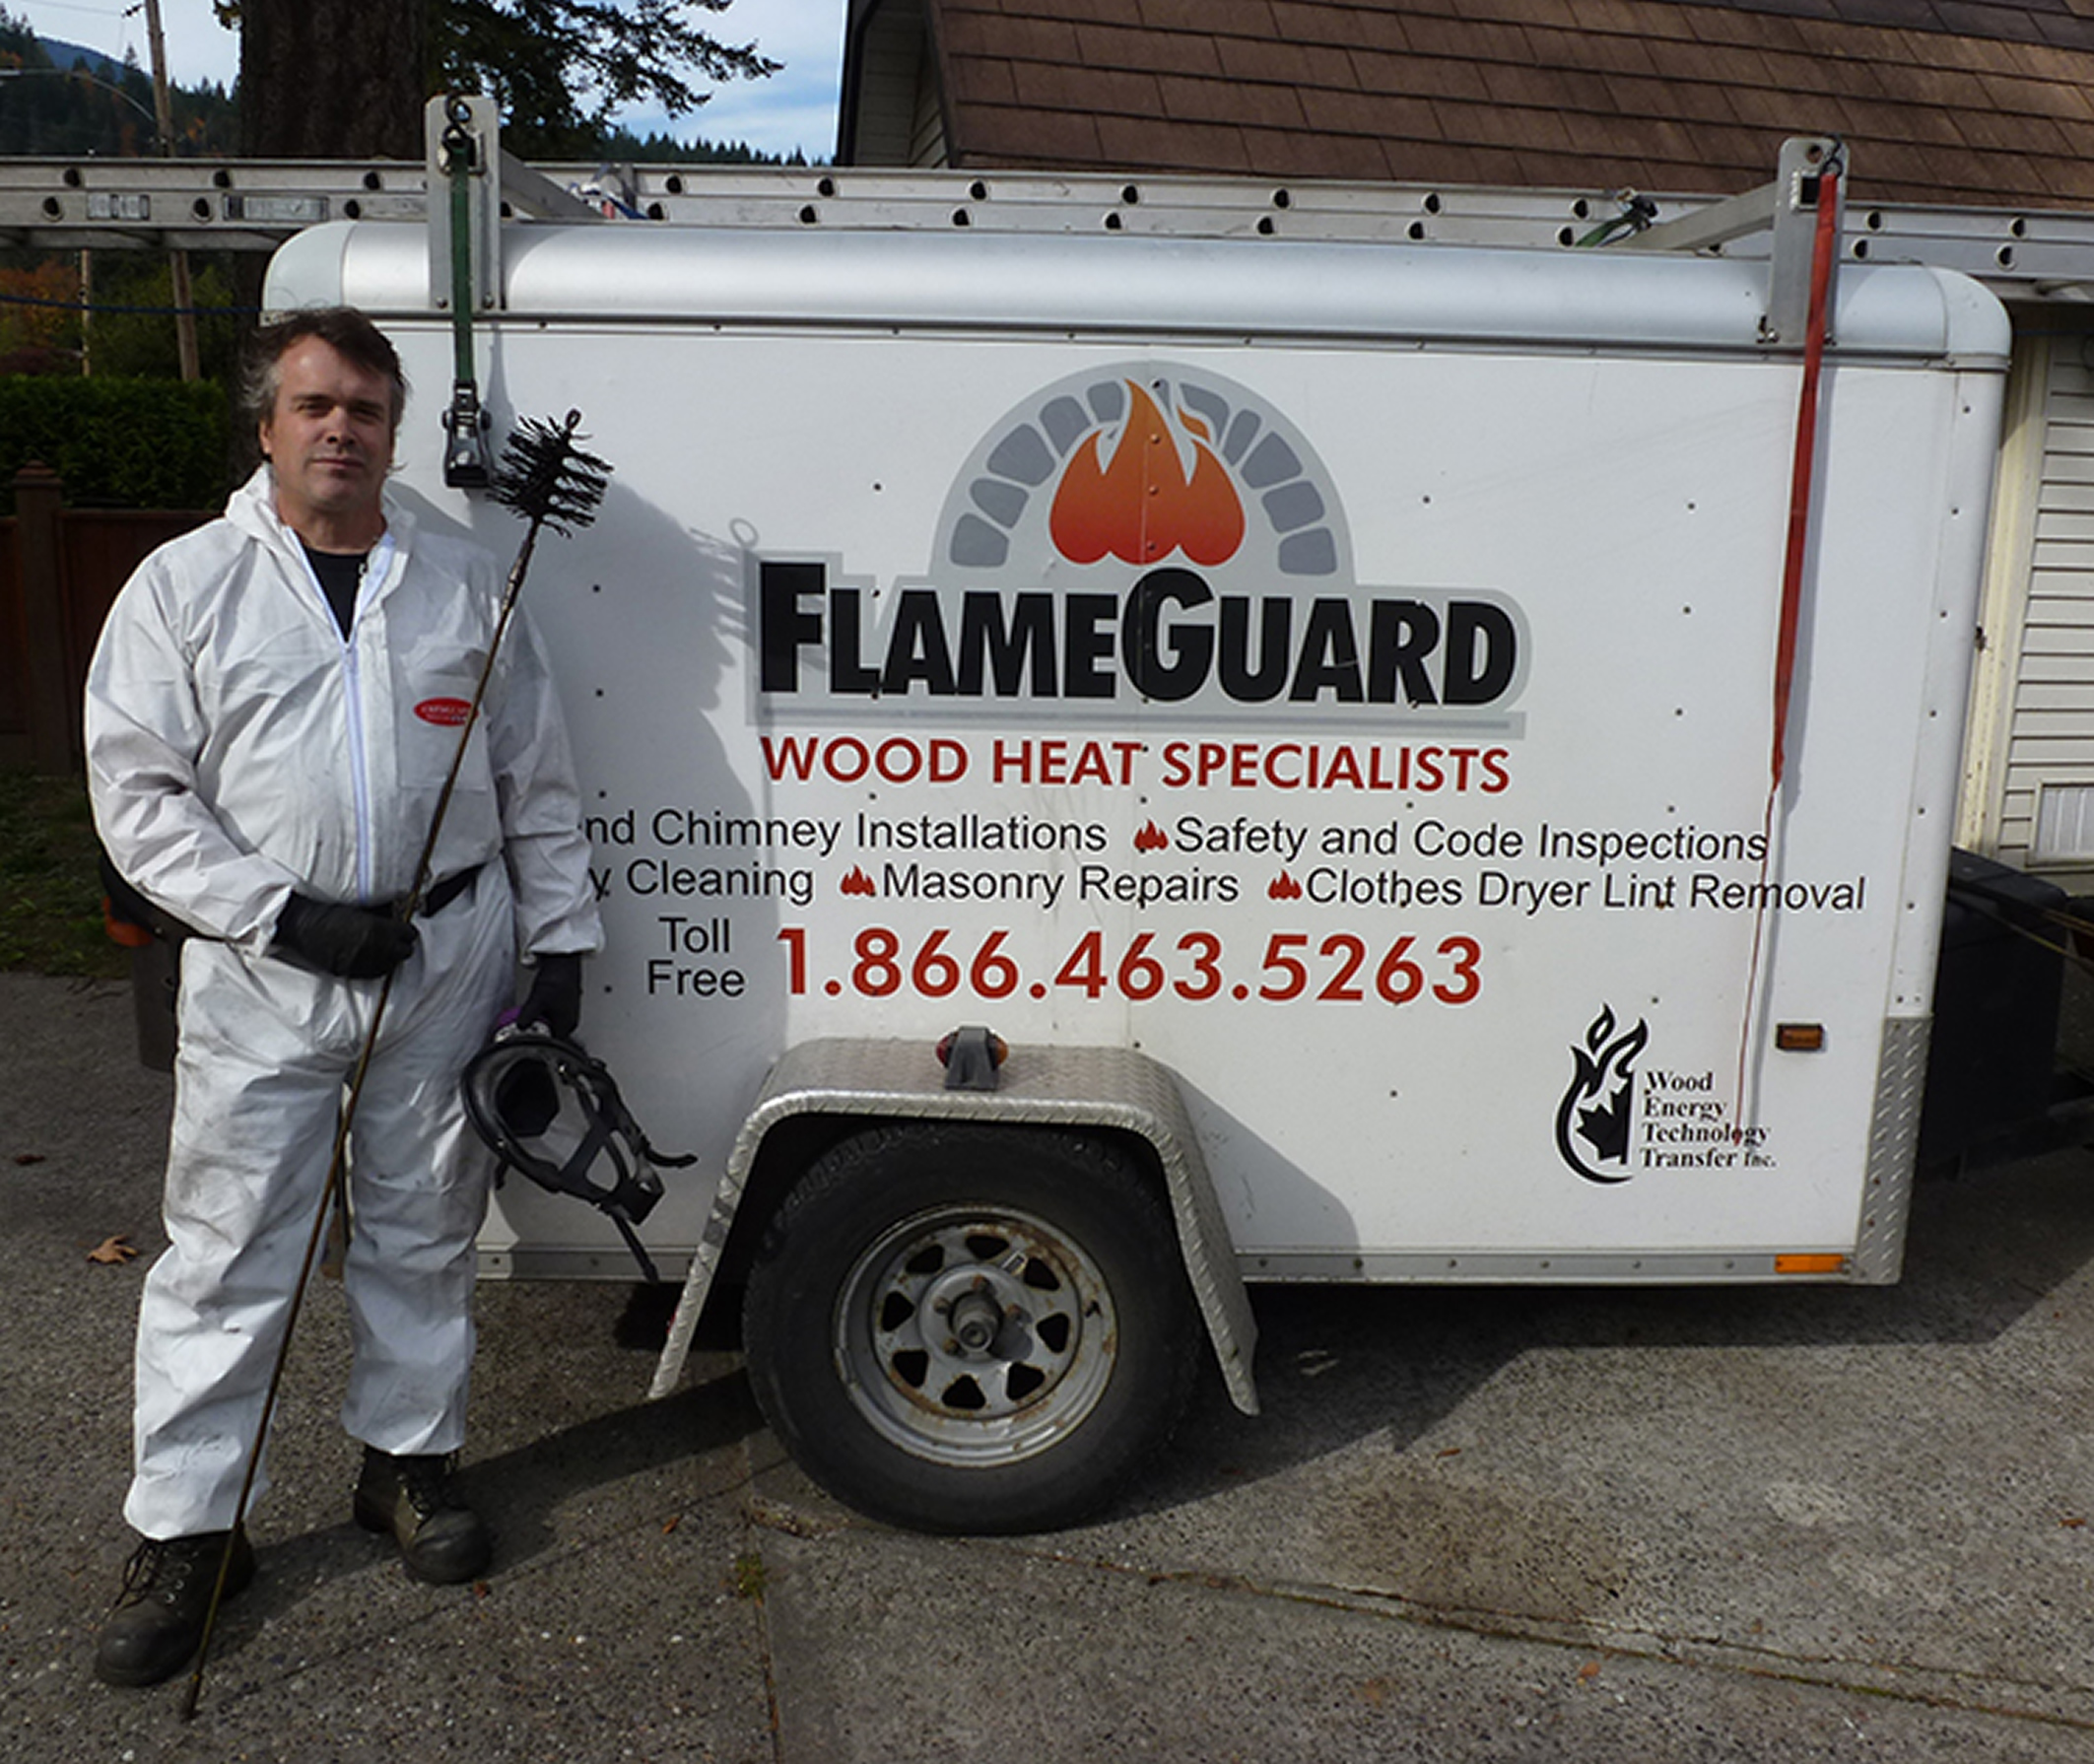 Chimney cleaning - chimney sweeping equipment trailer with Flameguard Andrew Kreller (owner)